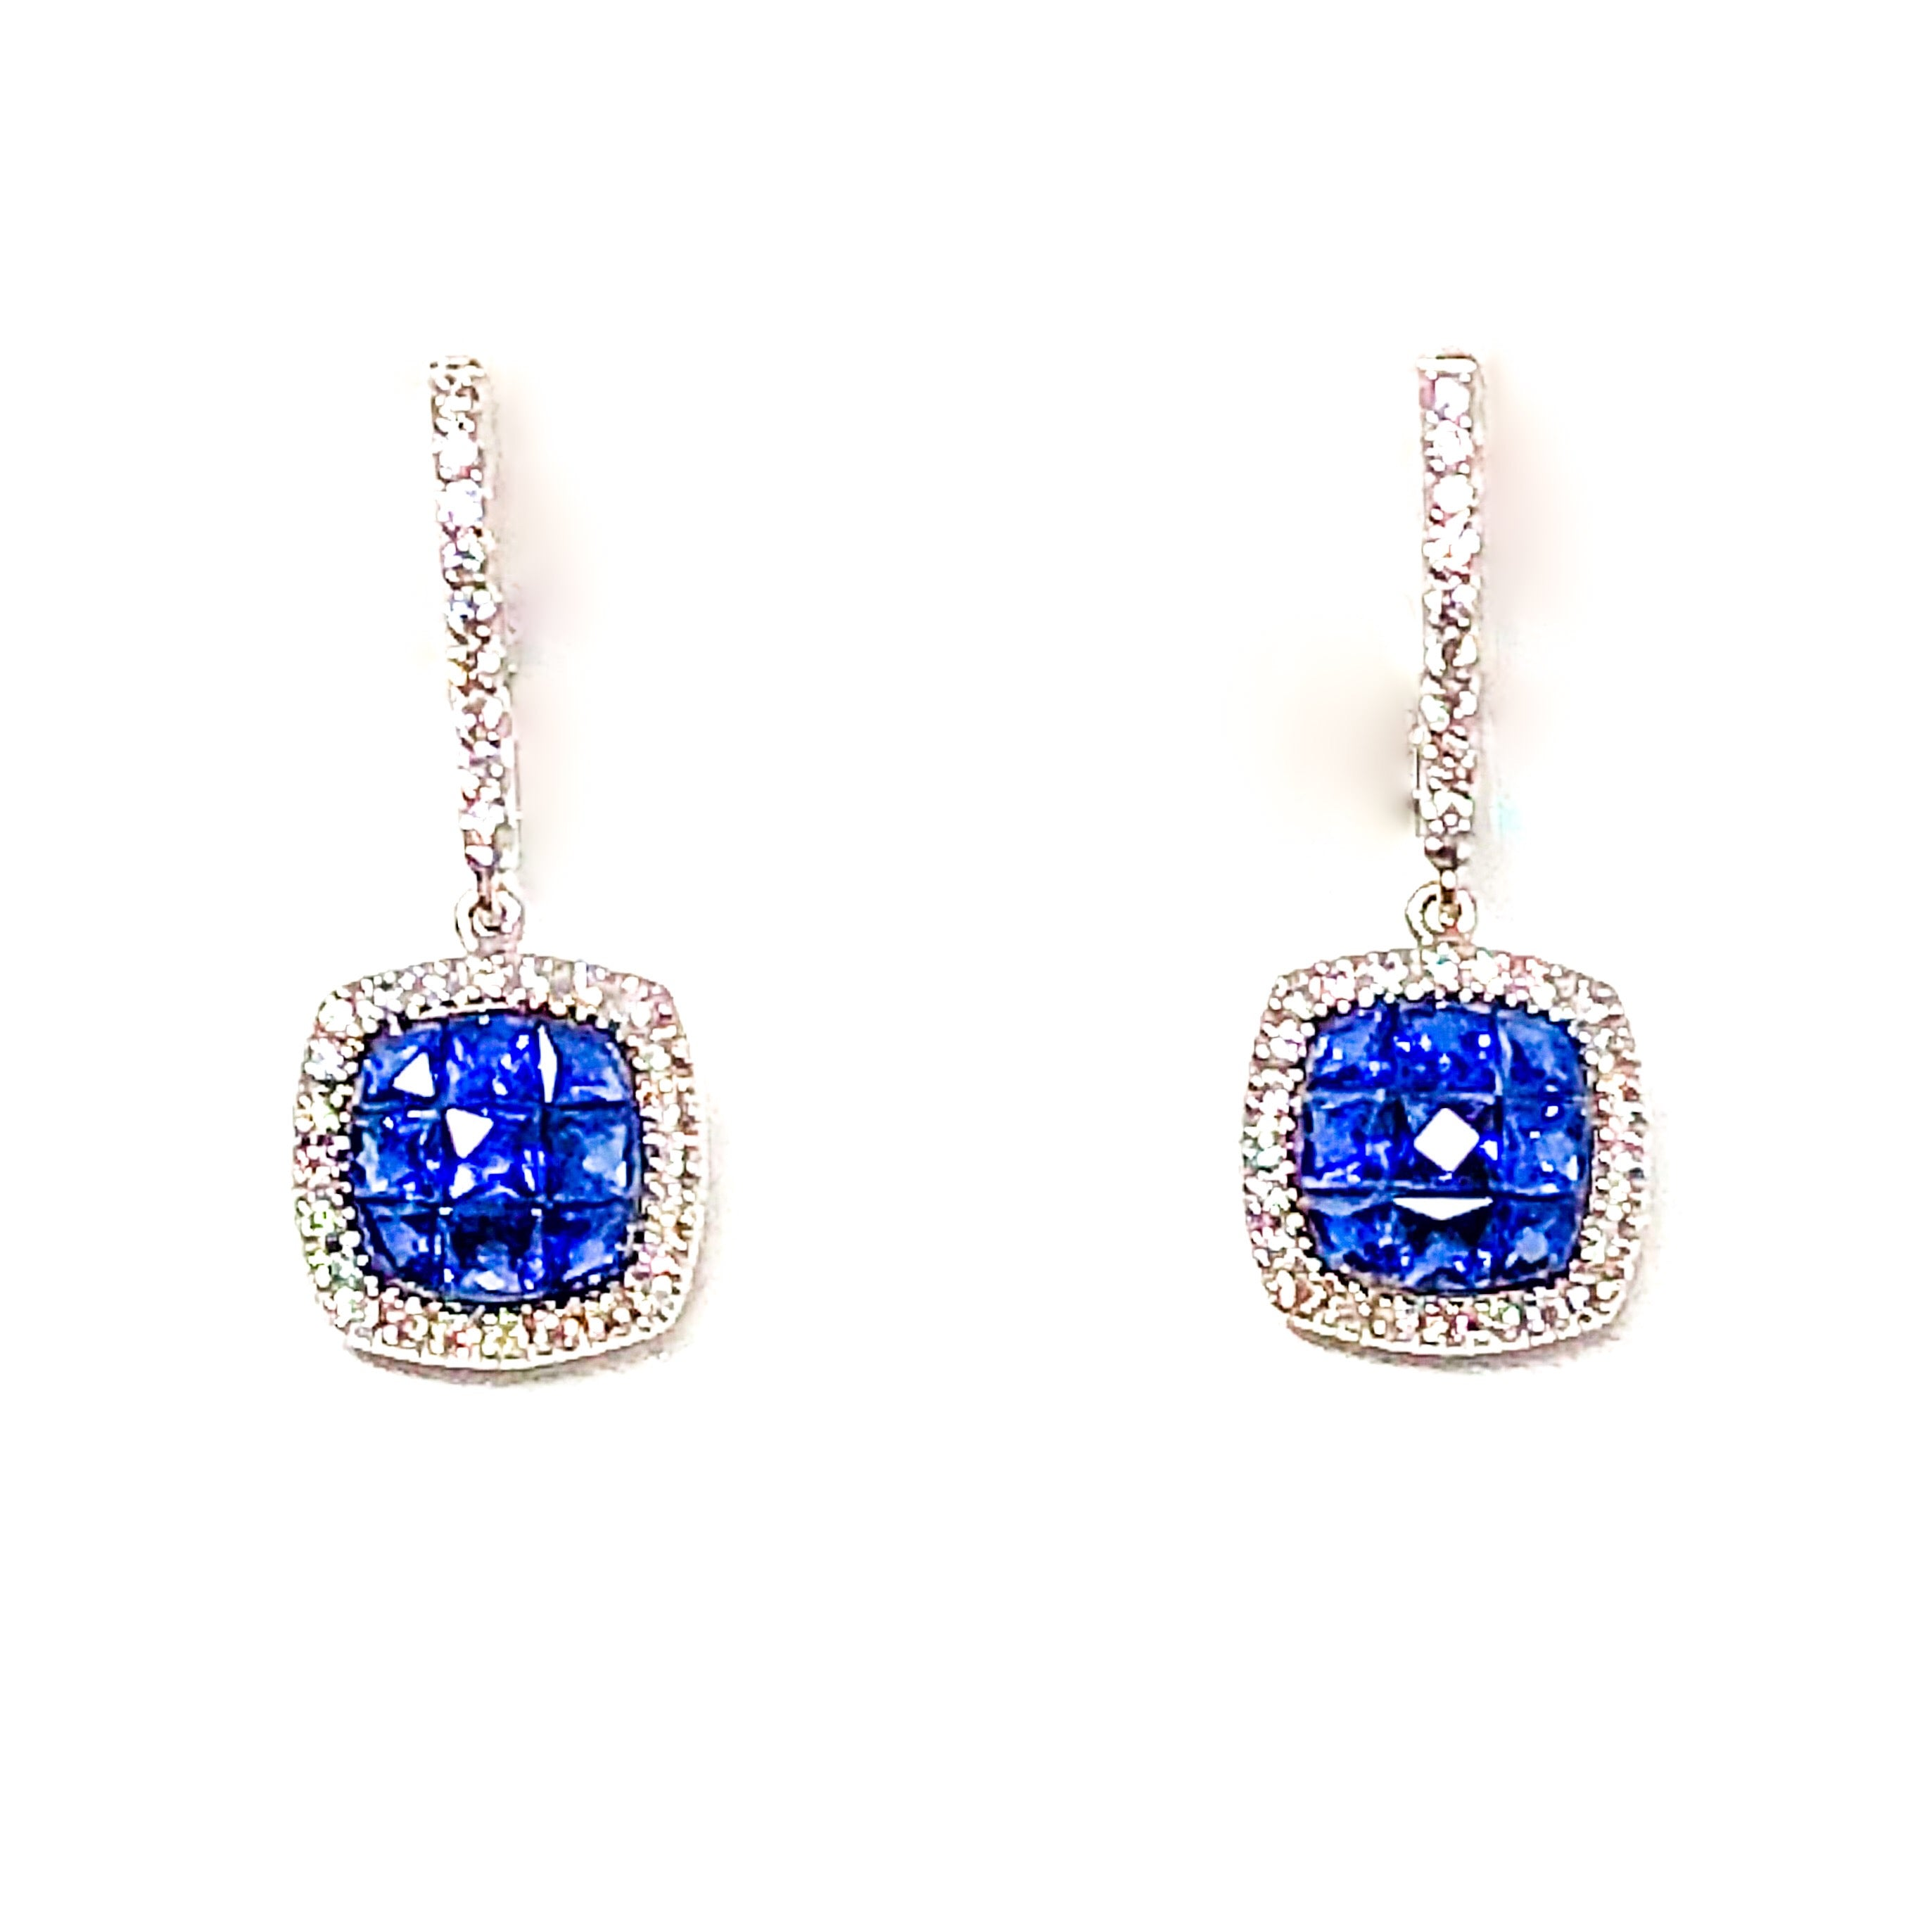 18kt White Gold Sapphire and Diamond Drop Earrings